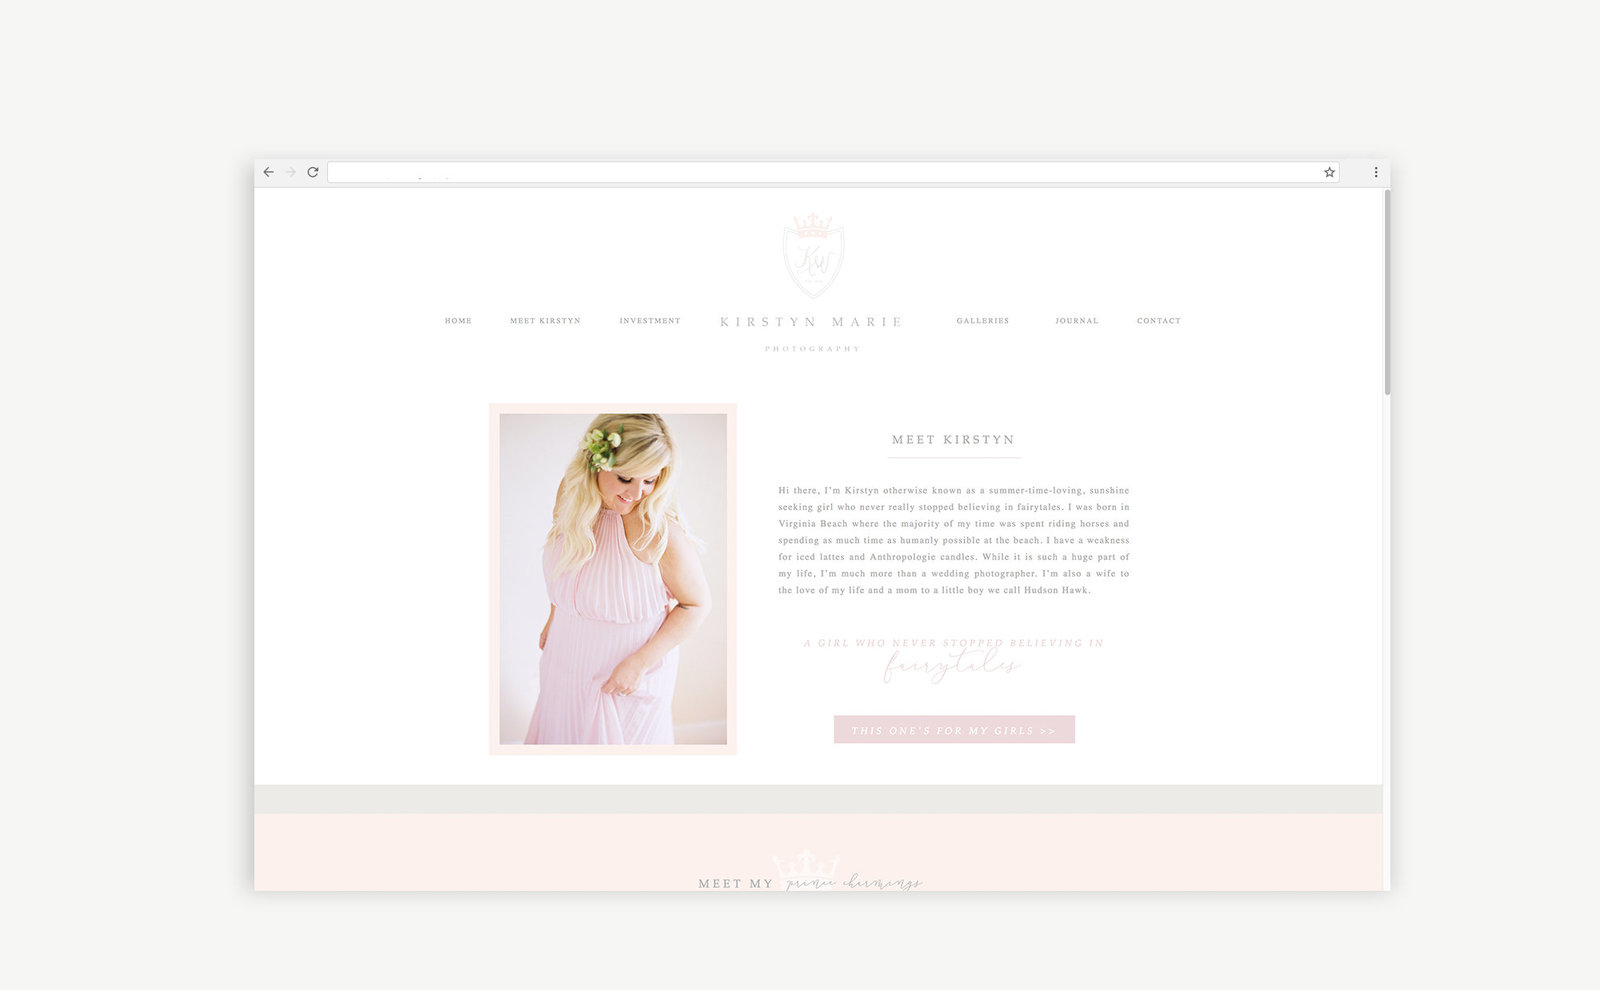 branding-for-photographers-web-design-kirstynmarie-02